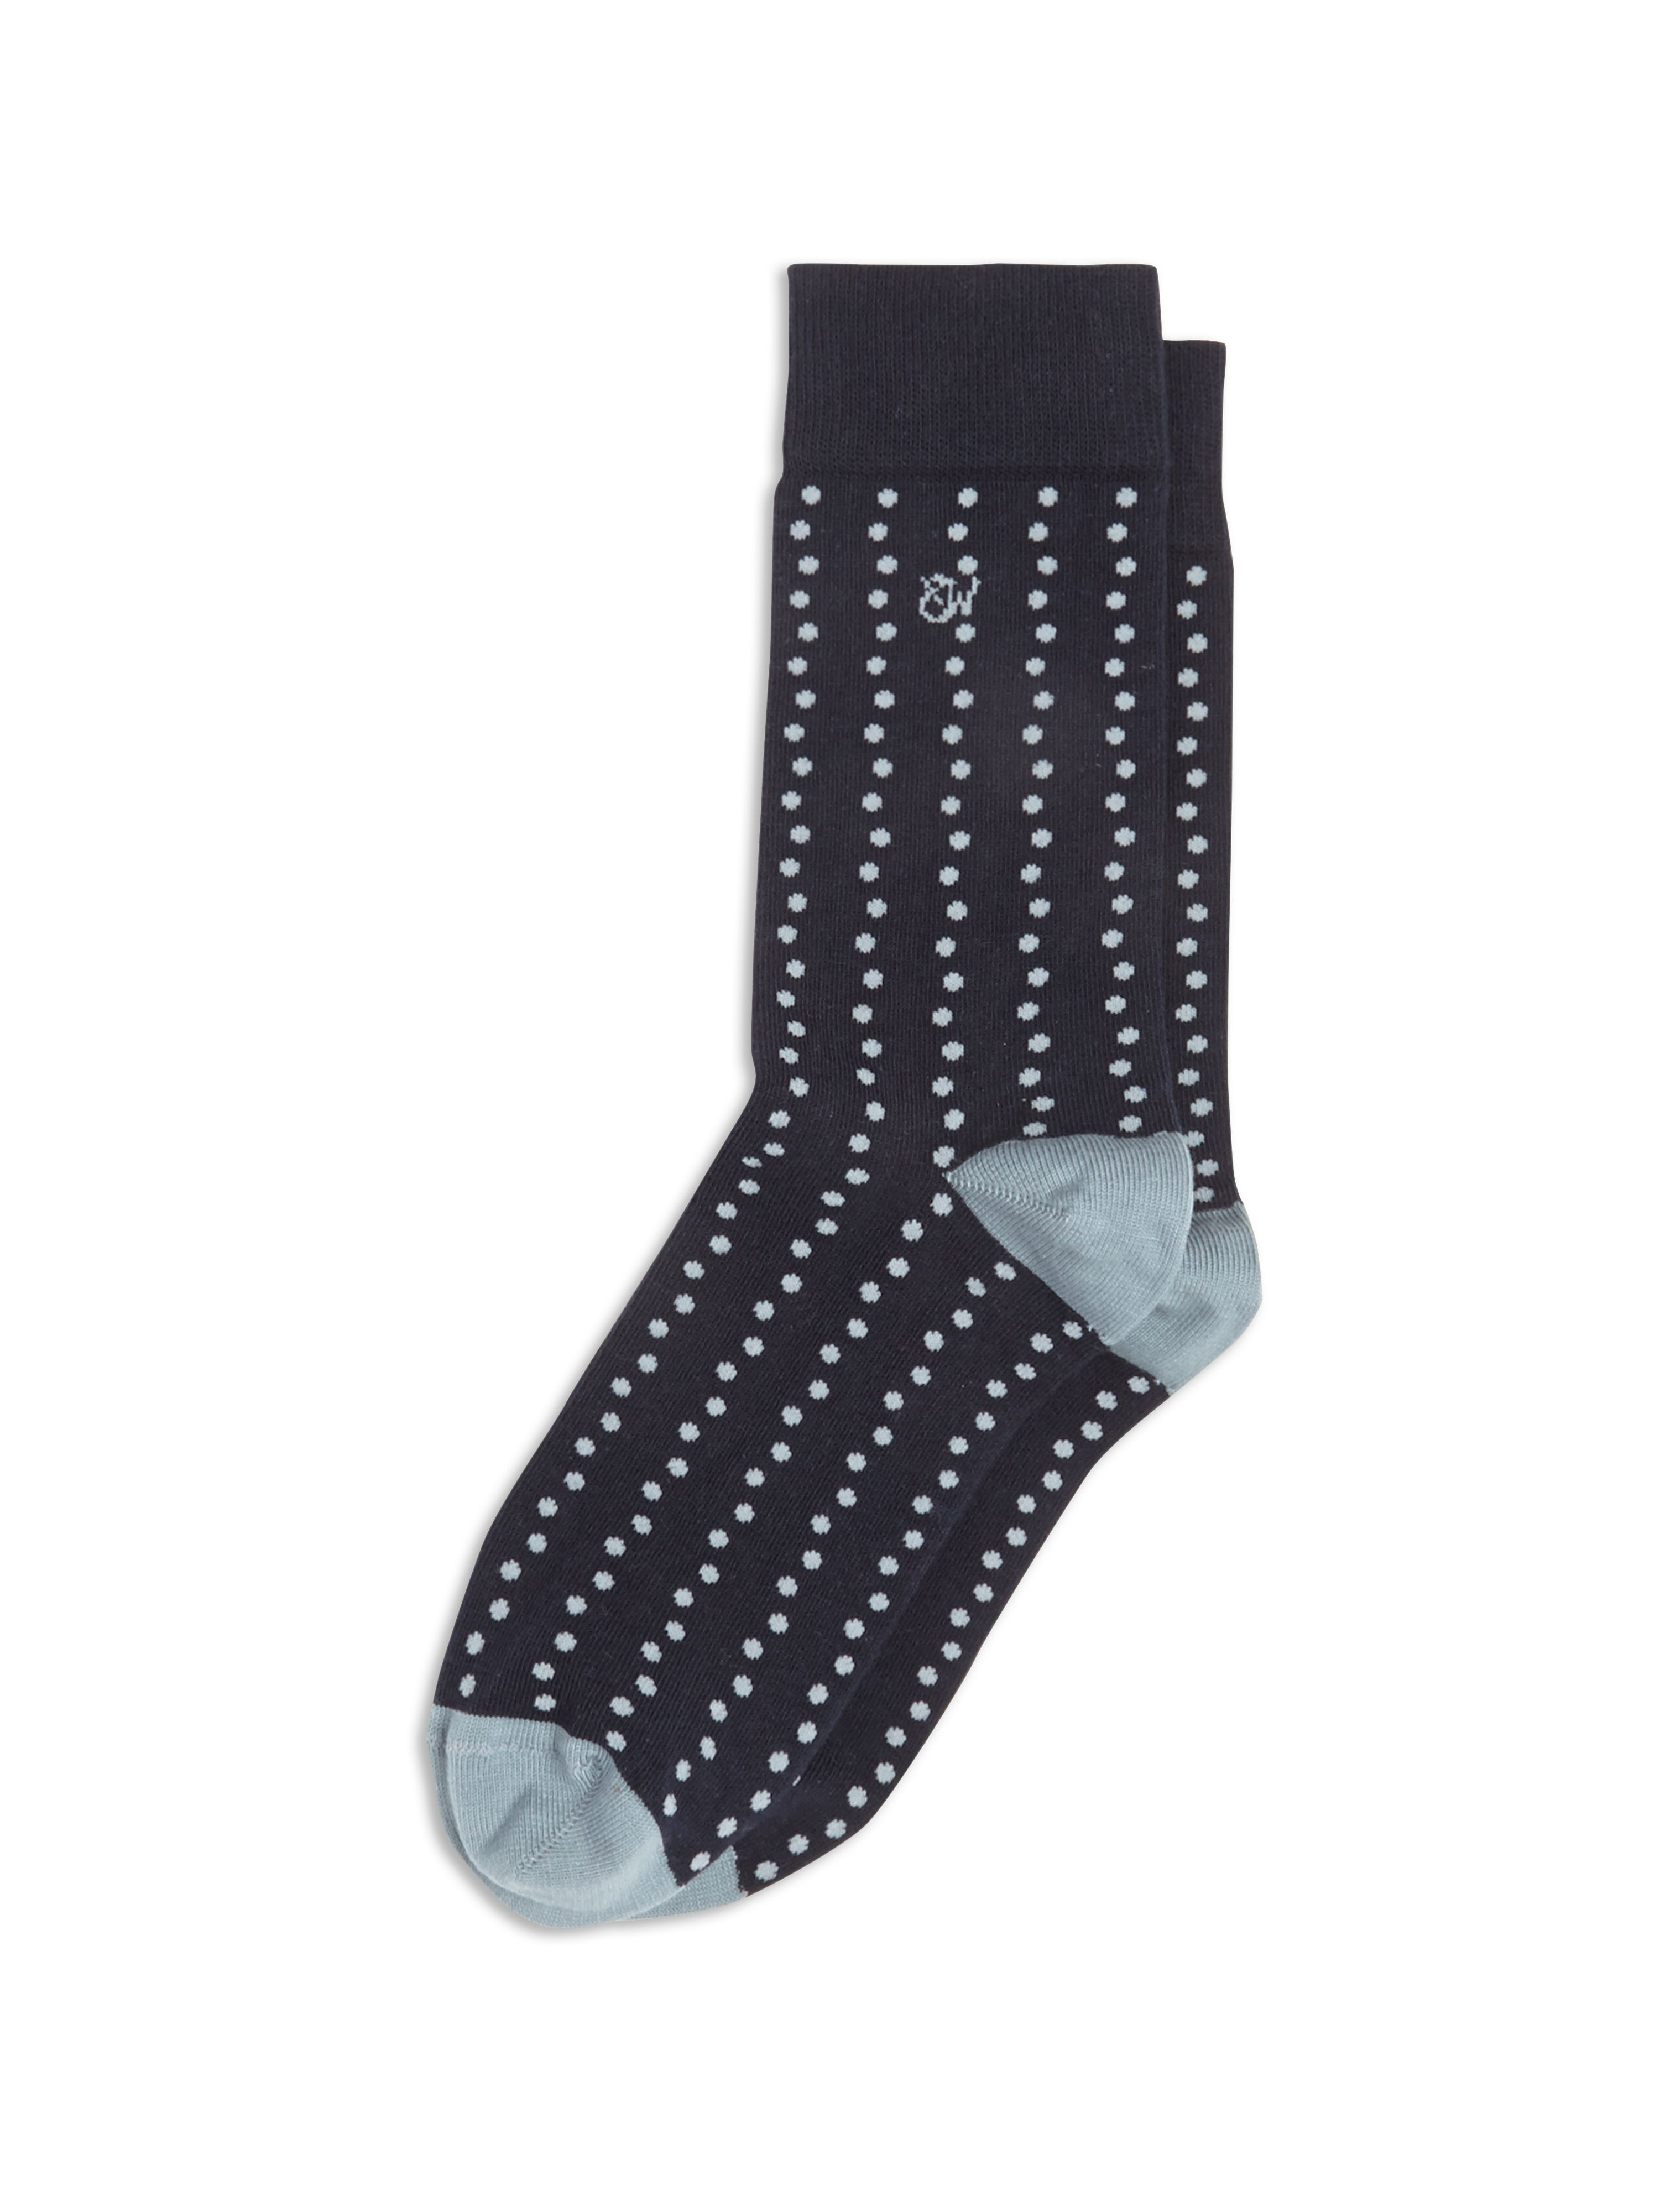 George spot socks